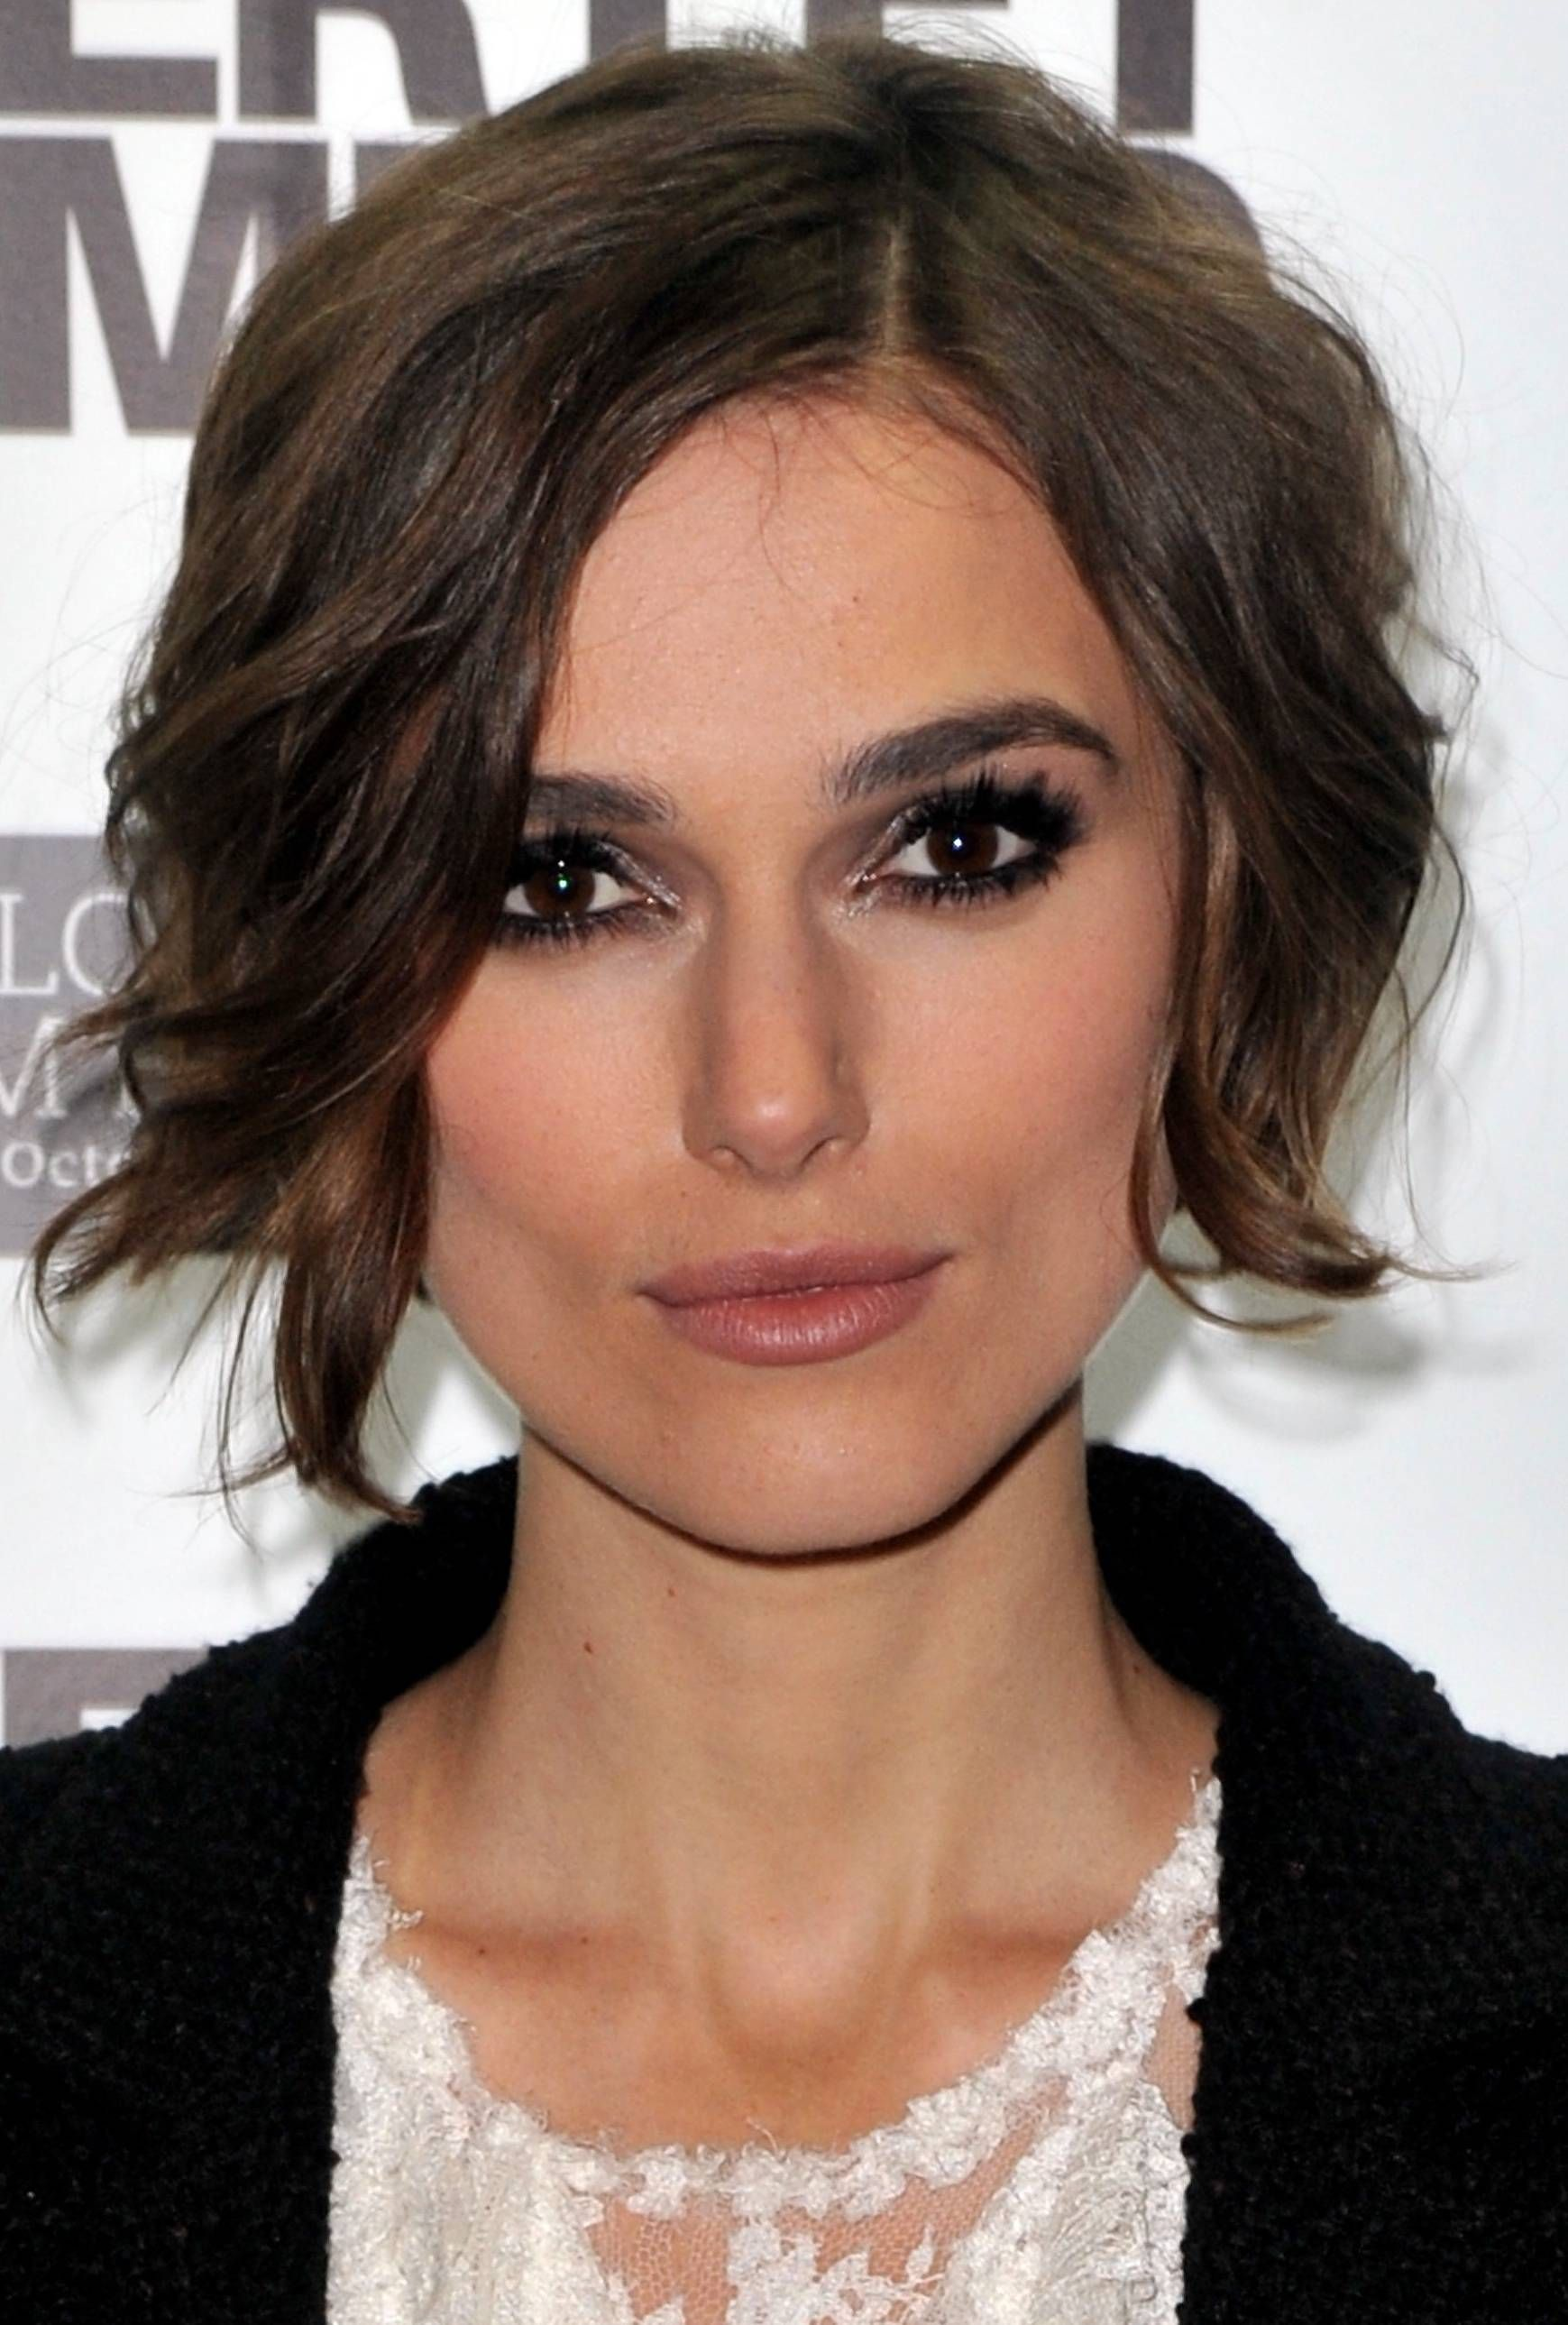 22 Inspiring Short Haircuts For Every Face Shape Square Face